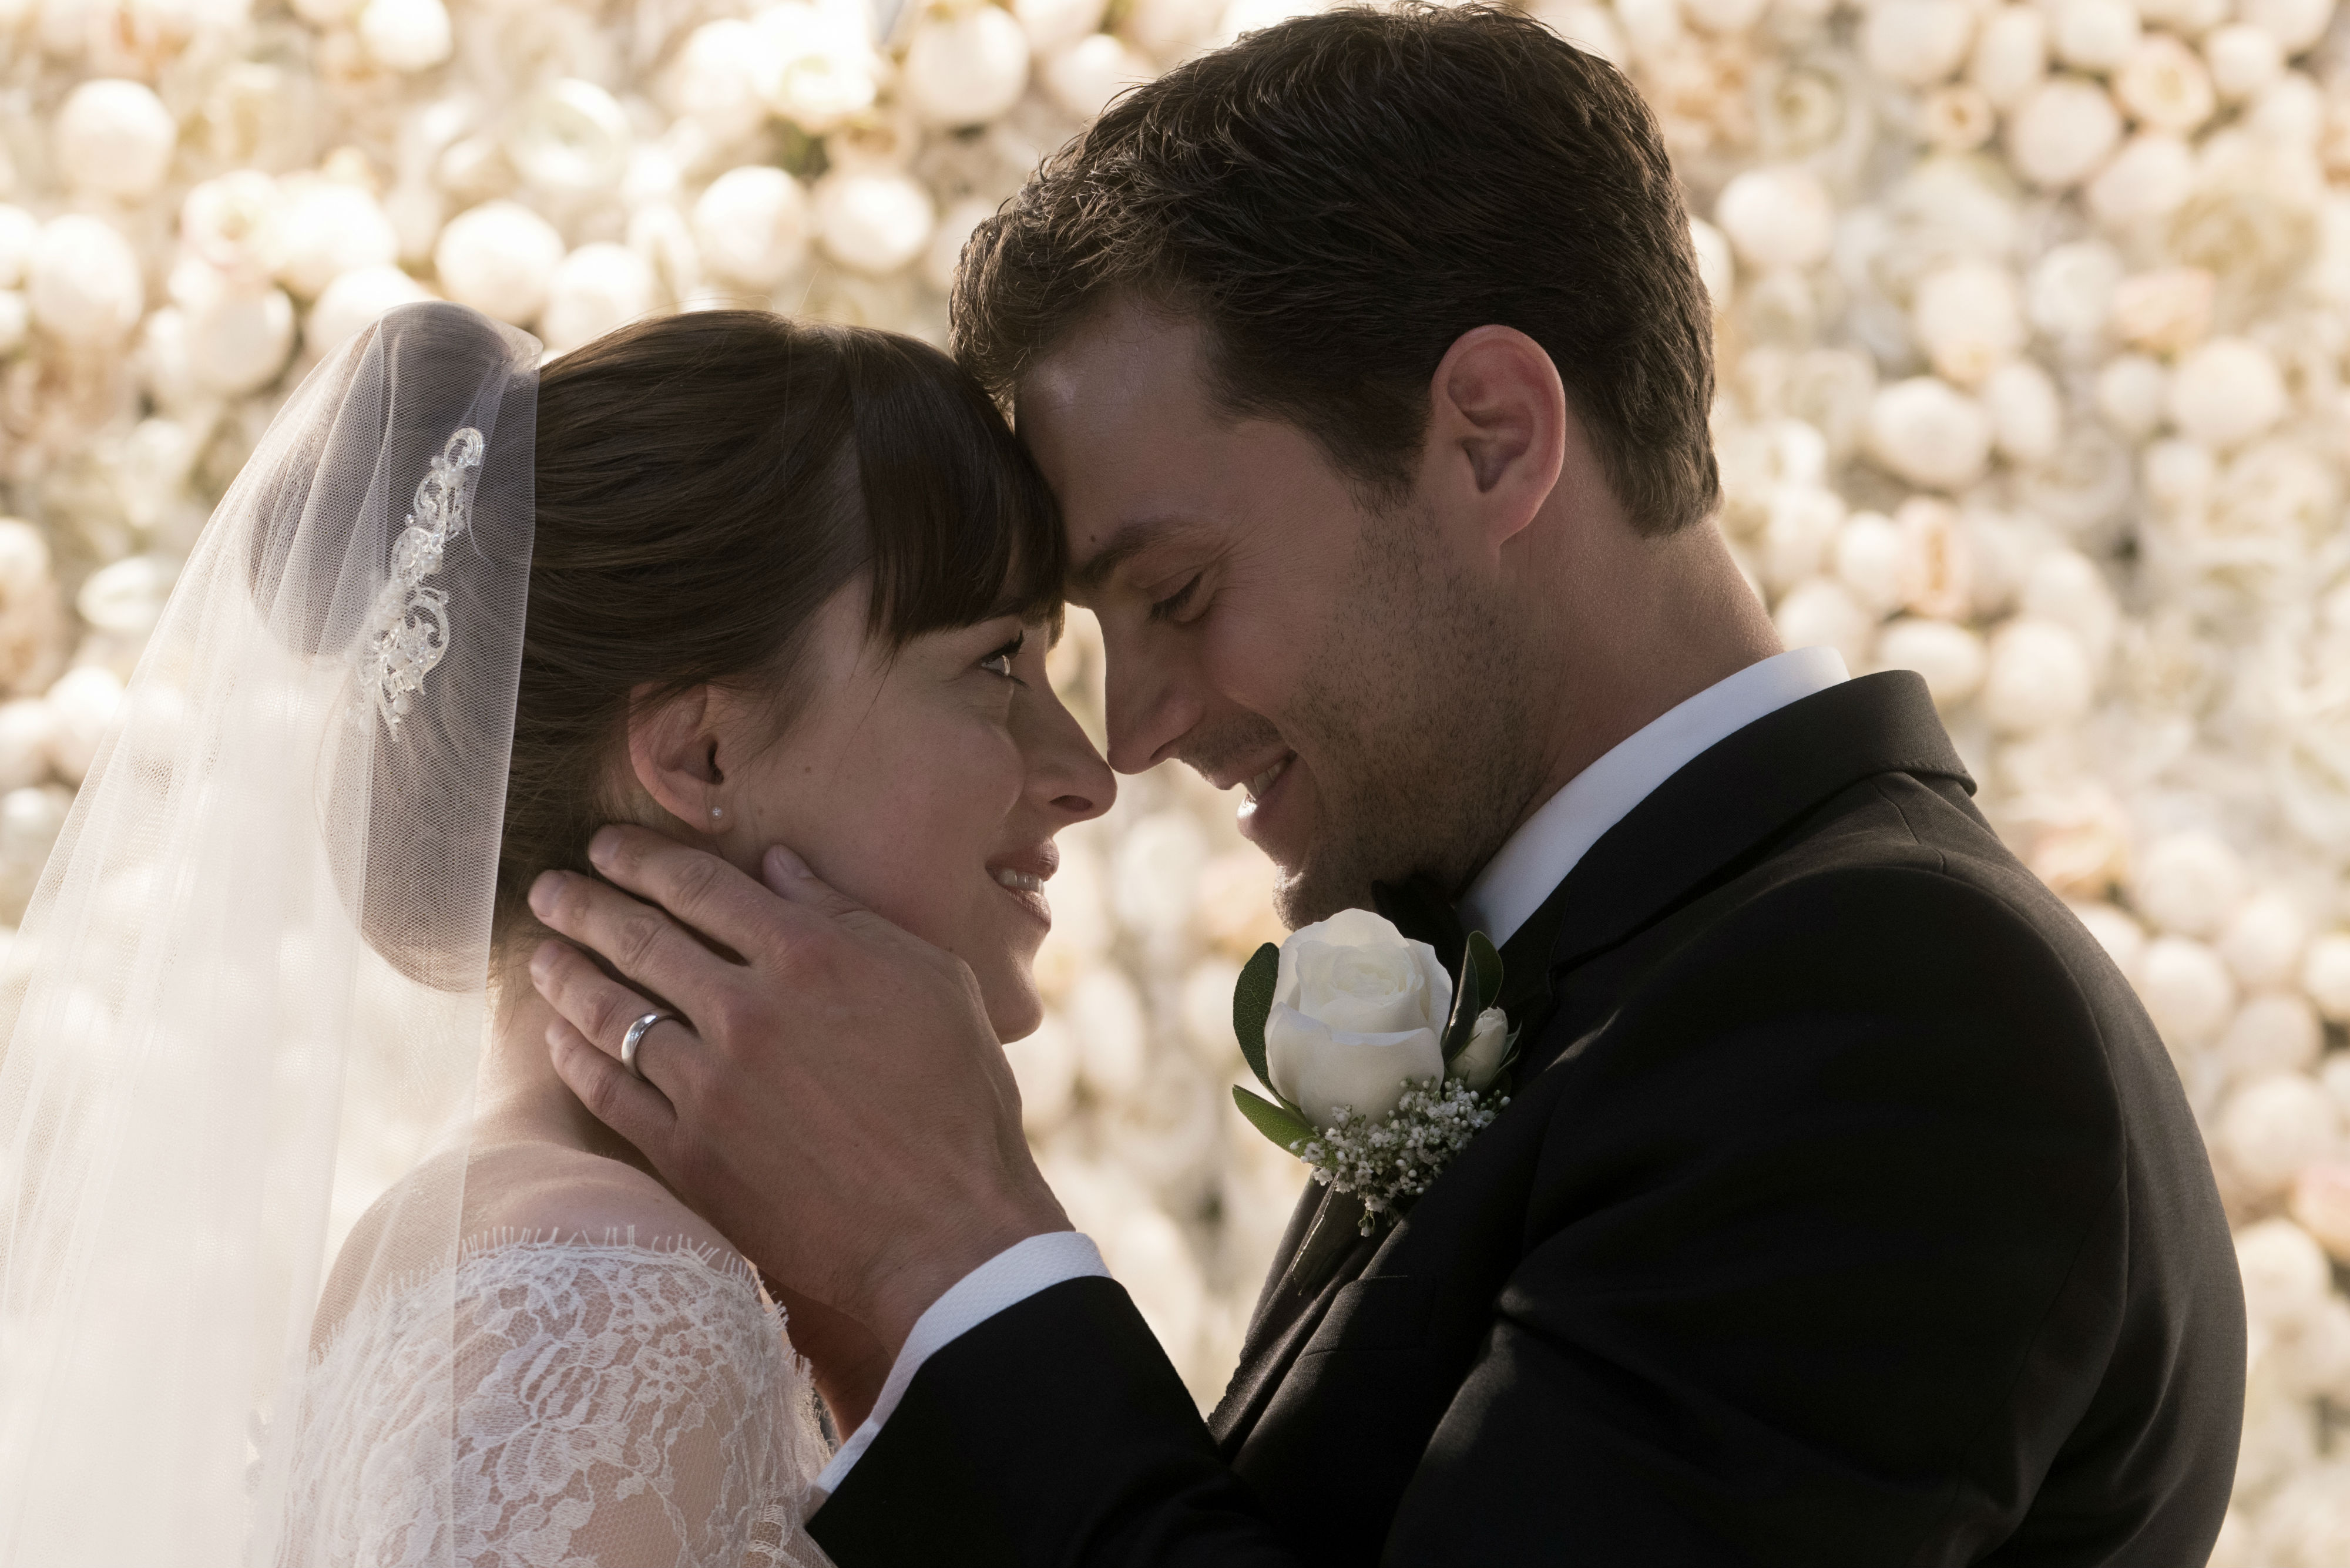 Inside The Screen Fifty Shades of Cinema & Blasting Interiors! 8